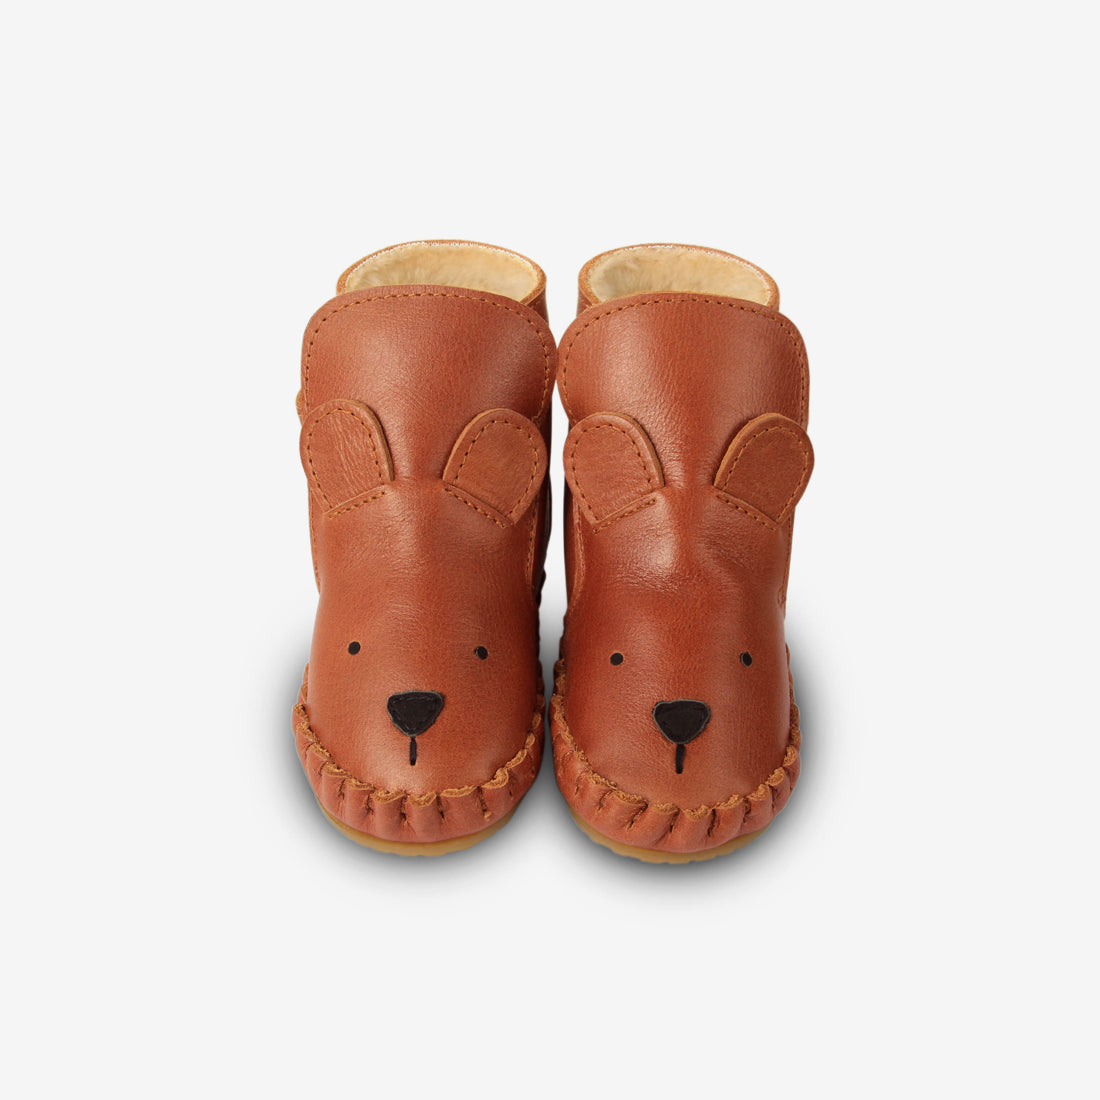 KAPI Shearling Leather Baby Boots - Bear